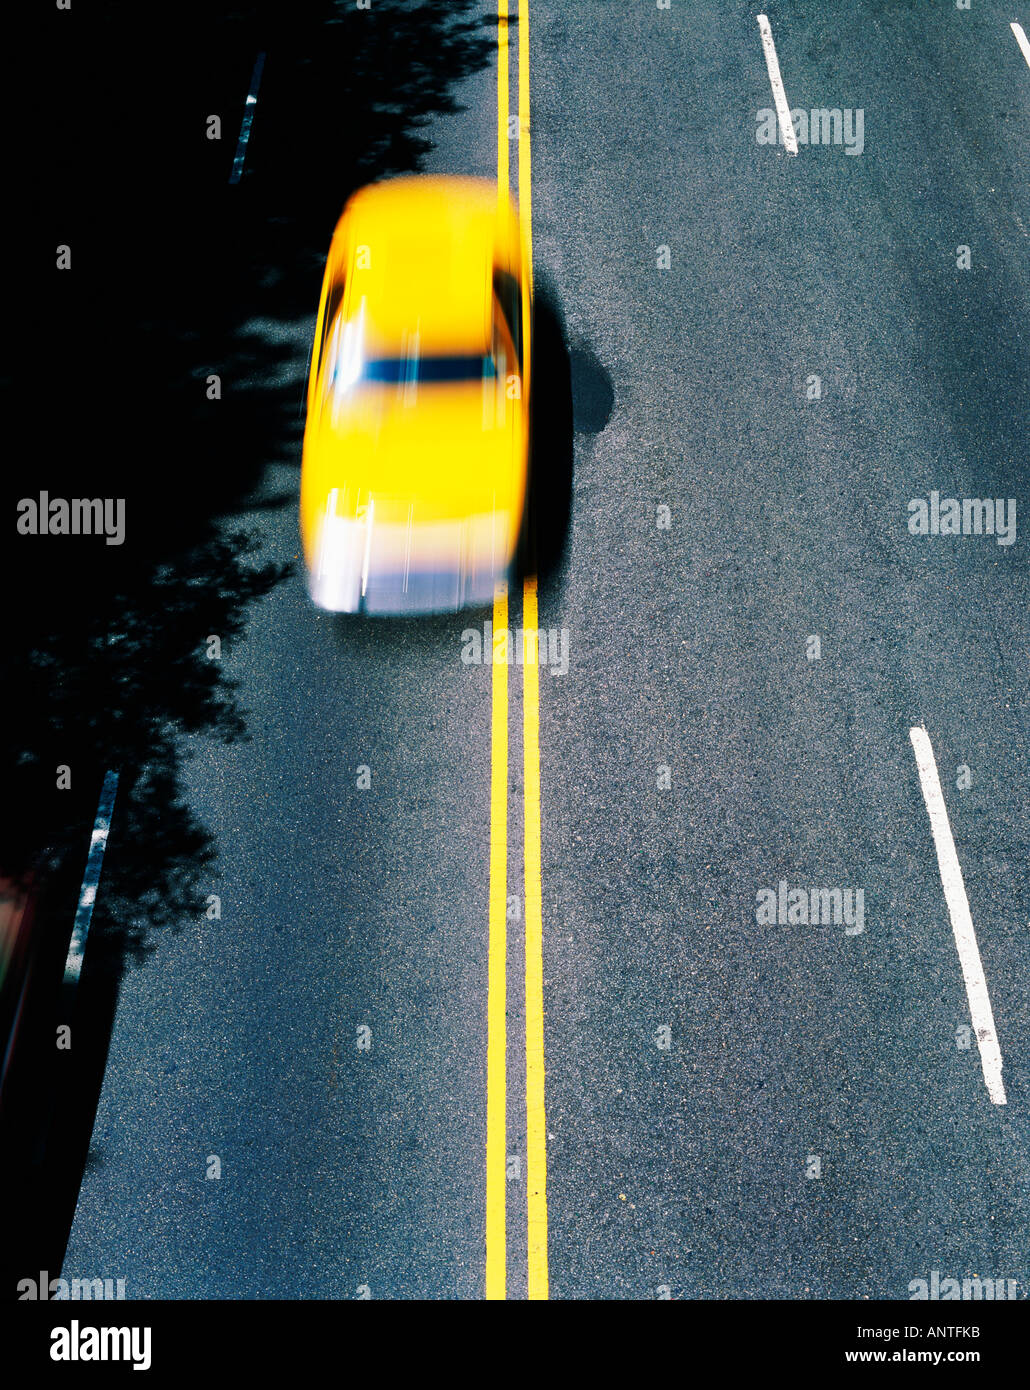 USA NEW YORK TAXI Photo Stock